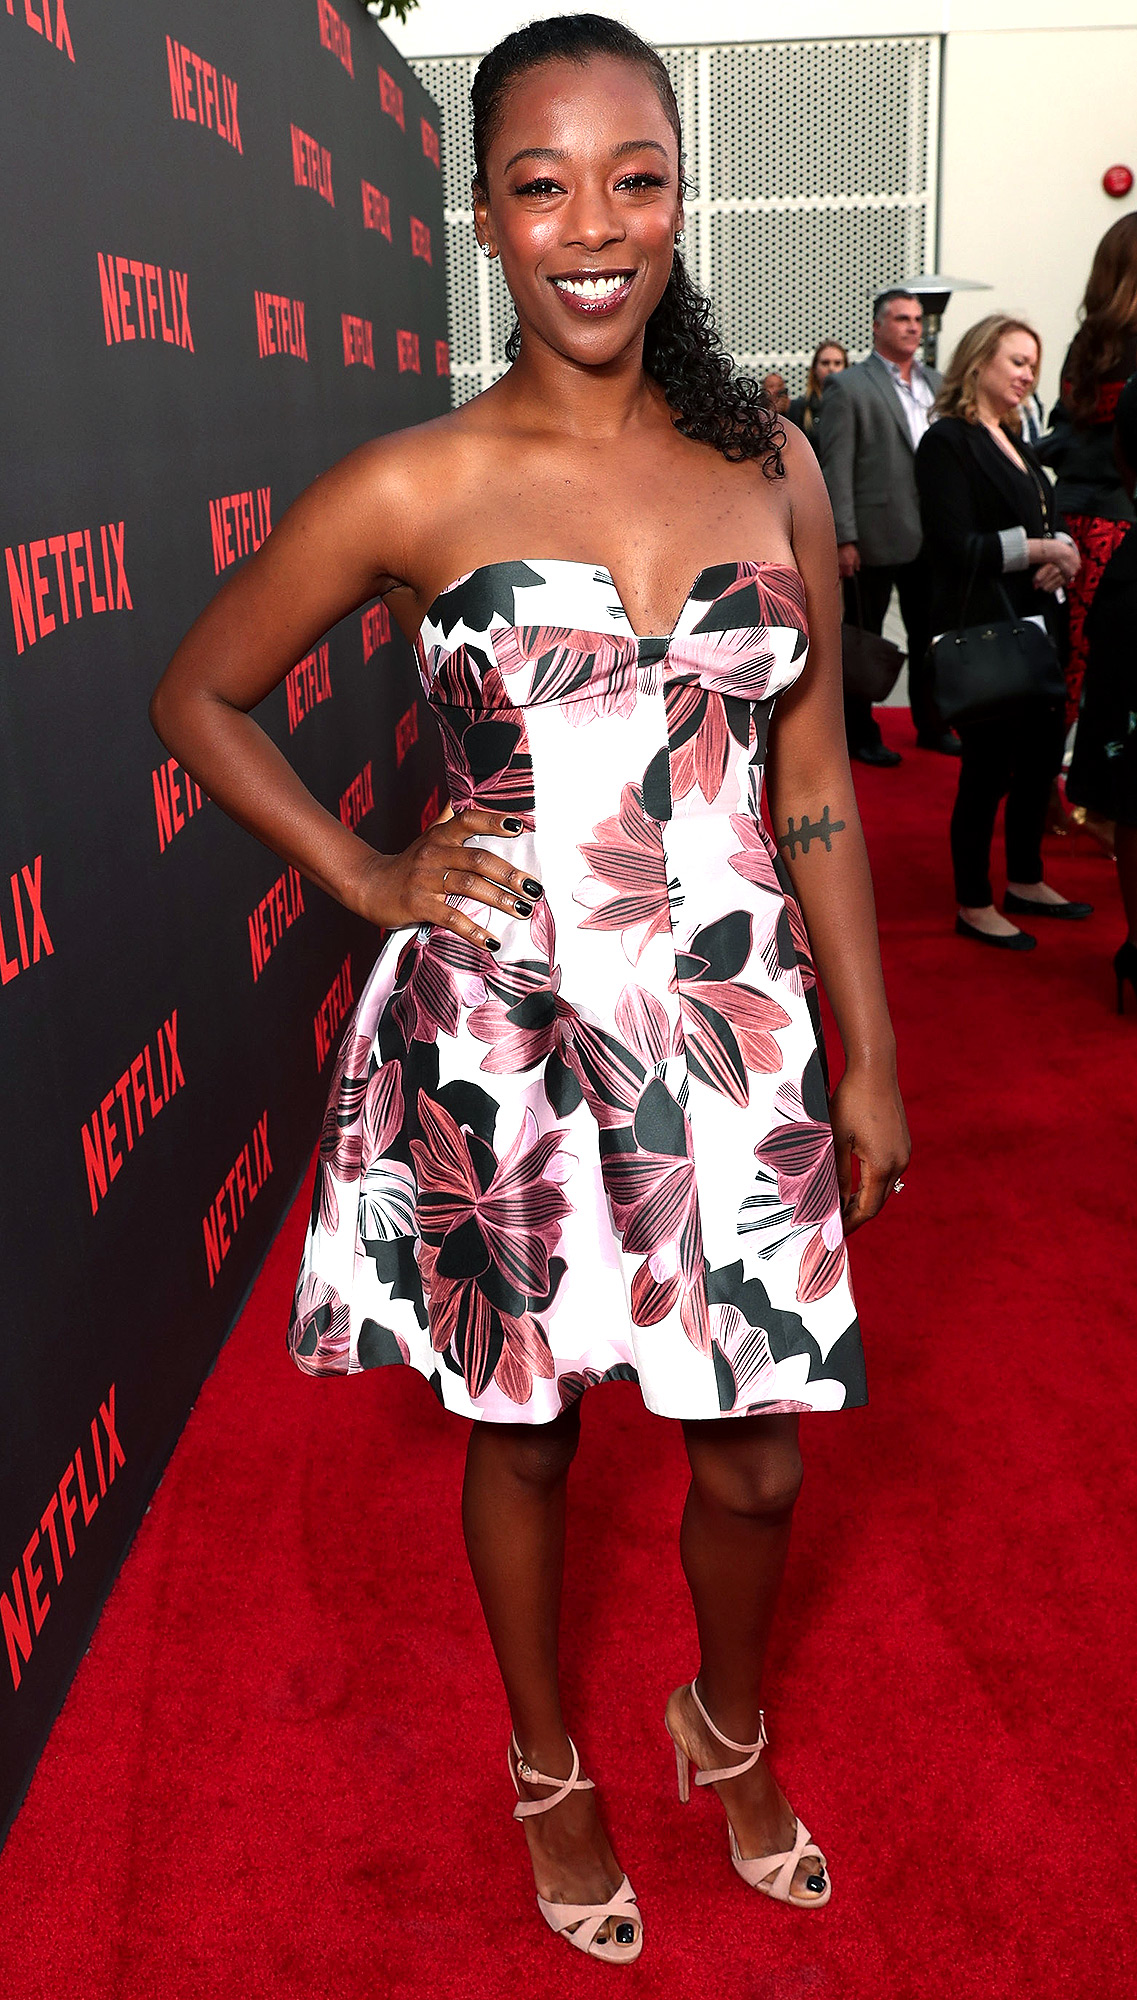 """Netflix's """"Orange Is The New Black"""" For Your Consideration Event - Red Carpet"""